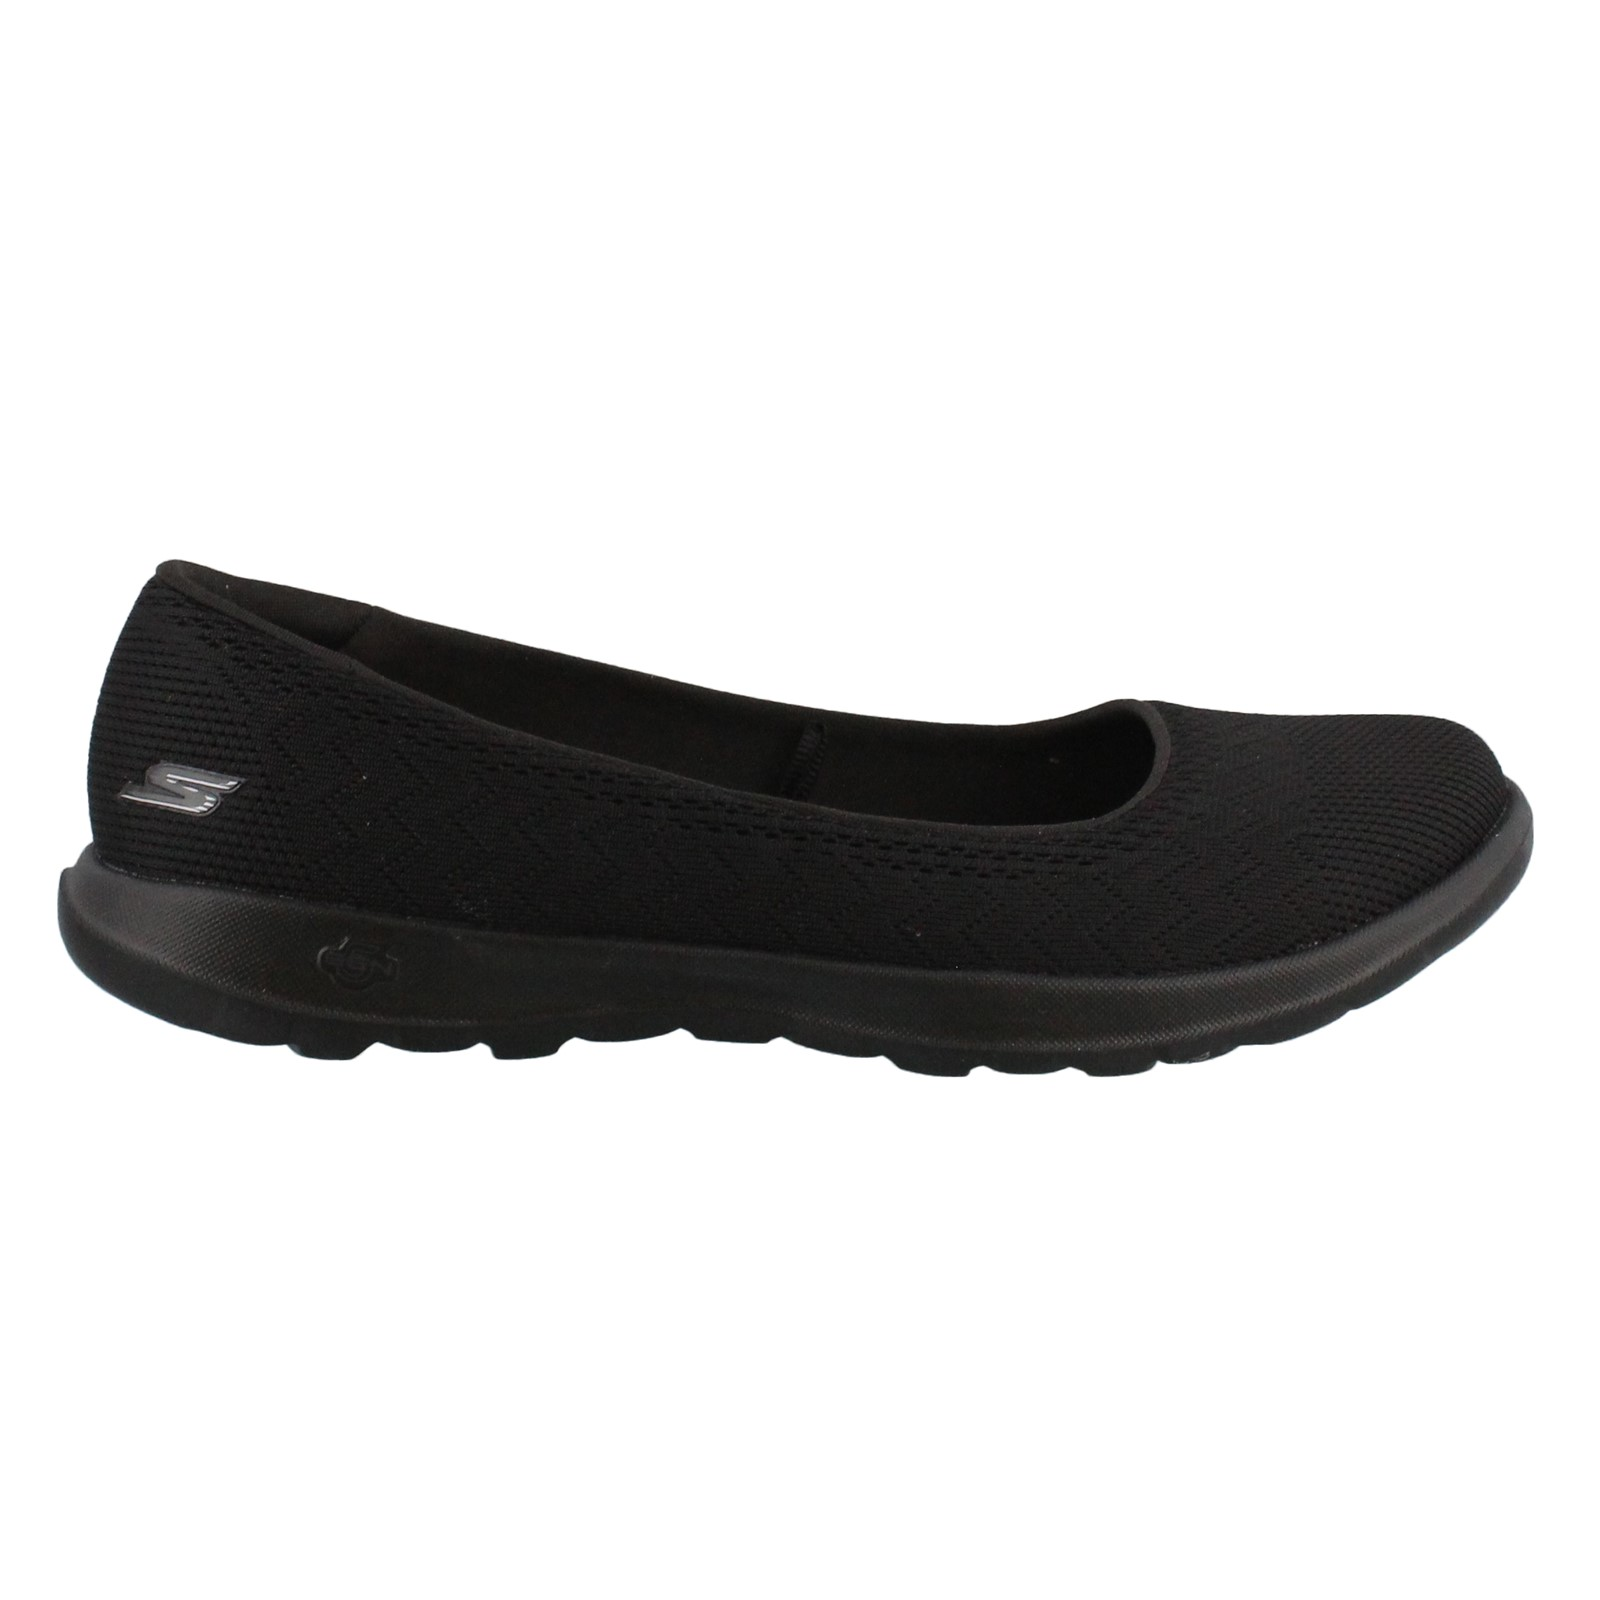 Women's Skechers Performance, Go Walk Lite Slip on Flats